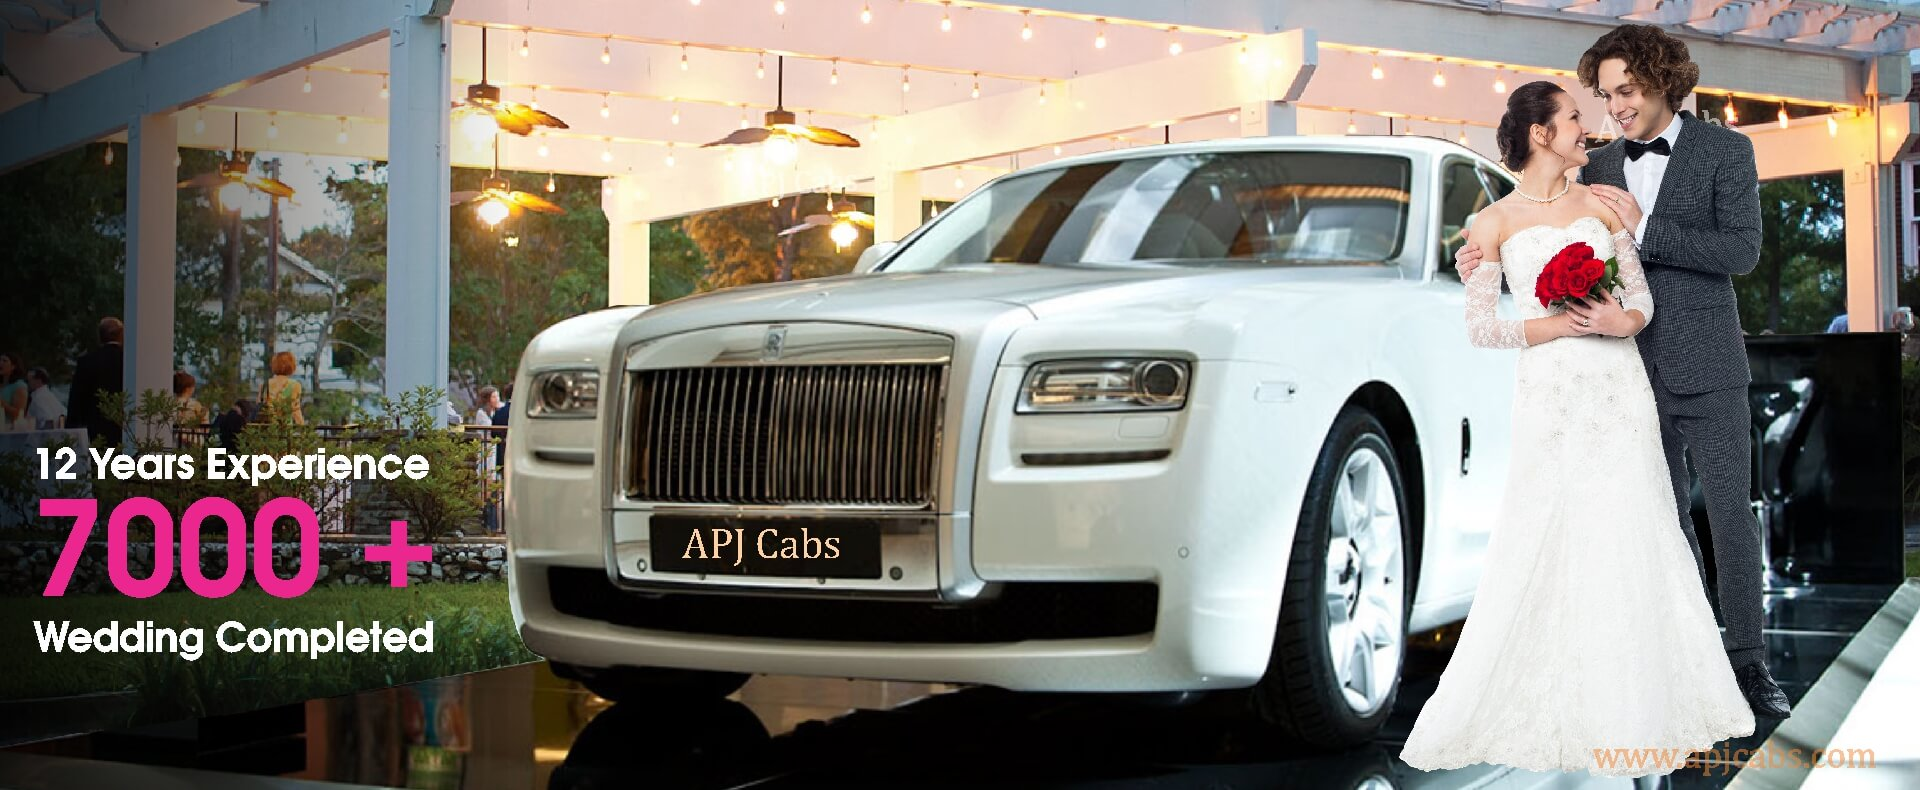 Wedding Car Rental In Chennai